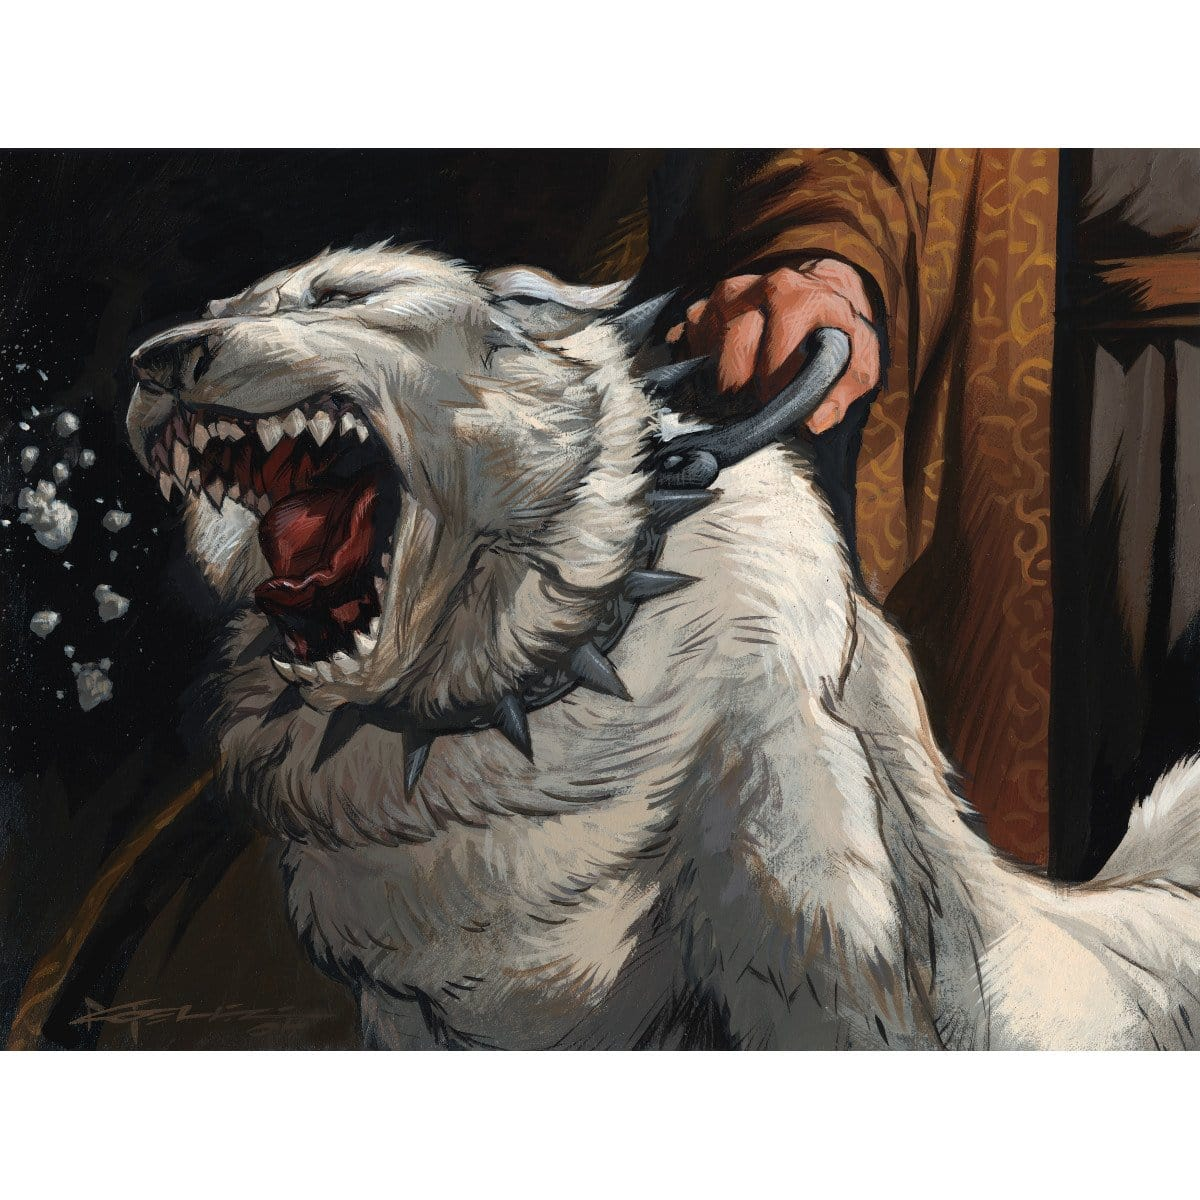 Isamaru, Hound of Konda Print - Print - Original Magic Art - Accessories for Magic the Gathering and other card games